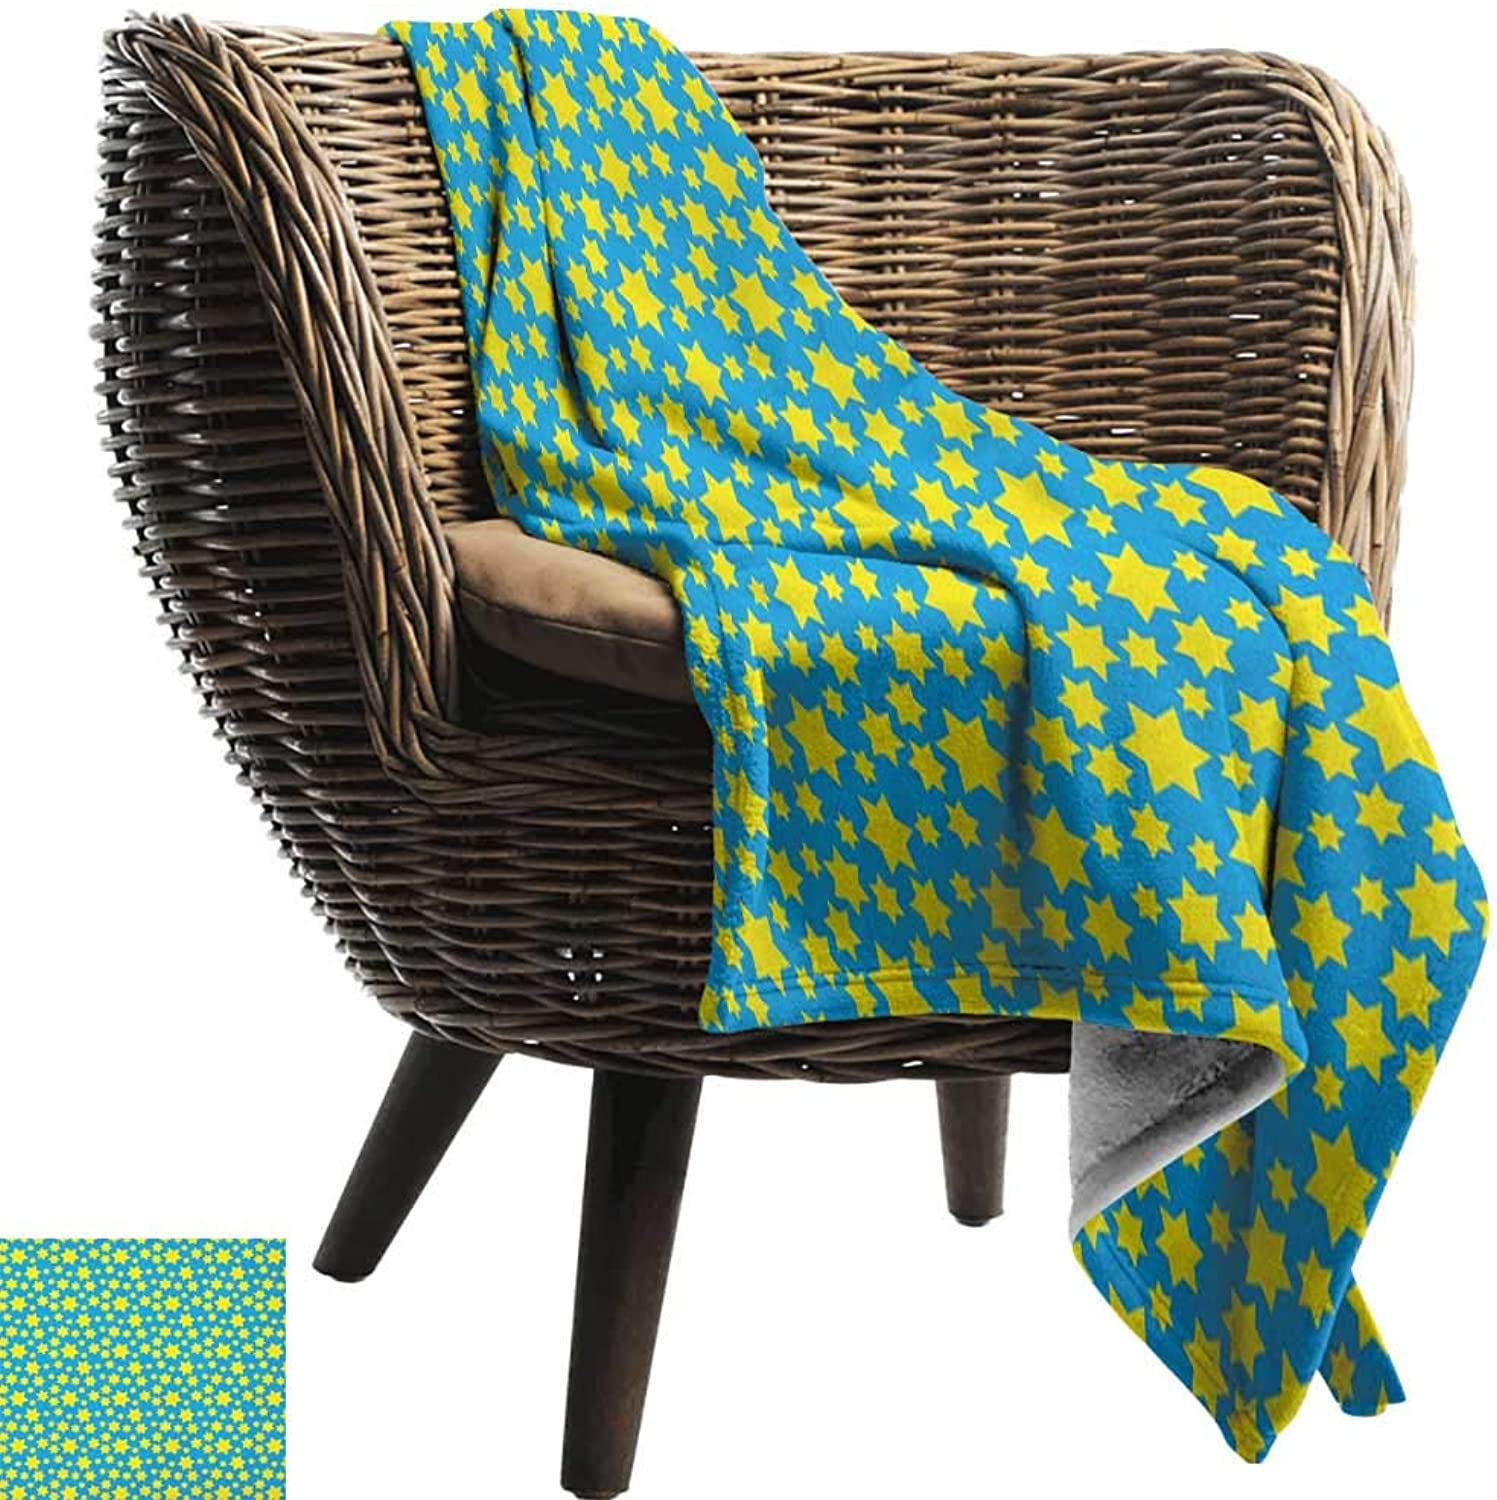 Sunnyhome Yellow and bluee,Throw Blanket,Stars Motif in Various Size Spiritual with Kids Effects Cute Design 60 x50 ,Super Soft and Comfortable,Suitable for Sofas,Chairs,beds